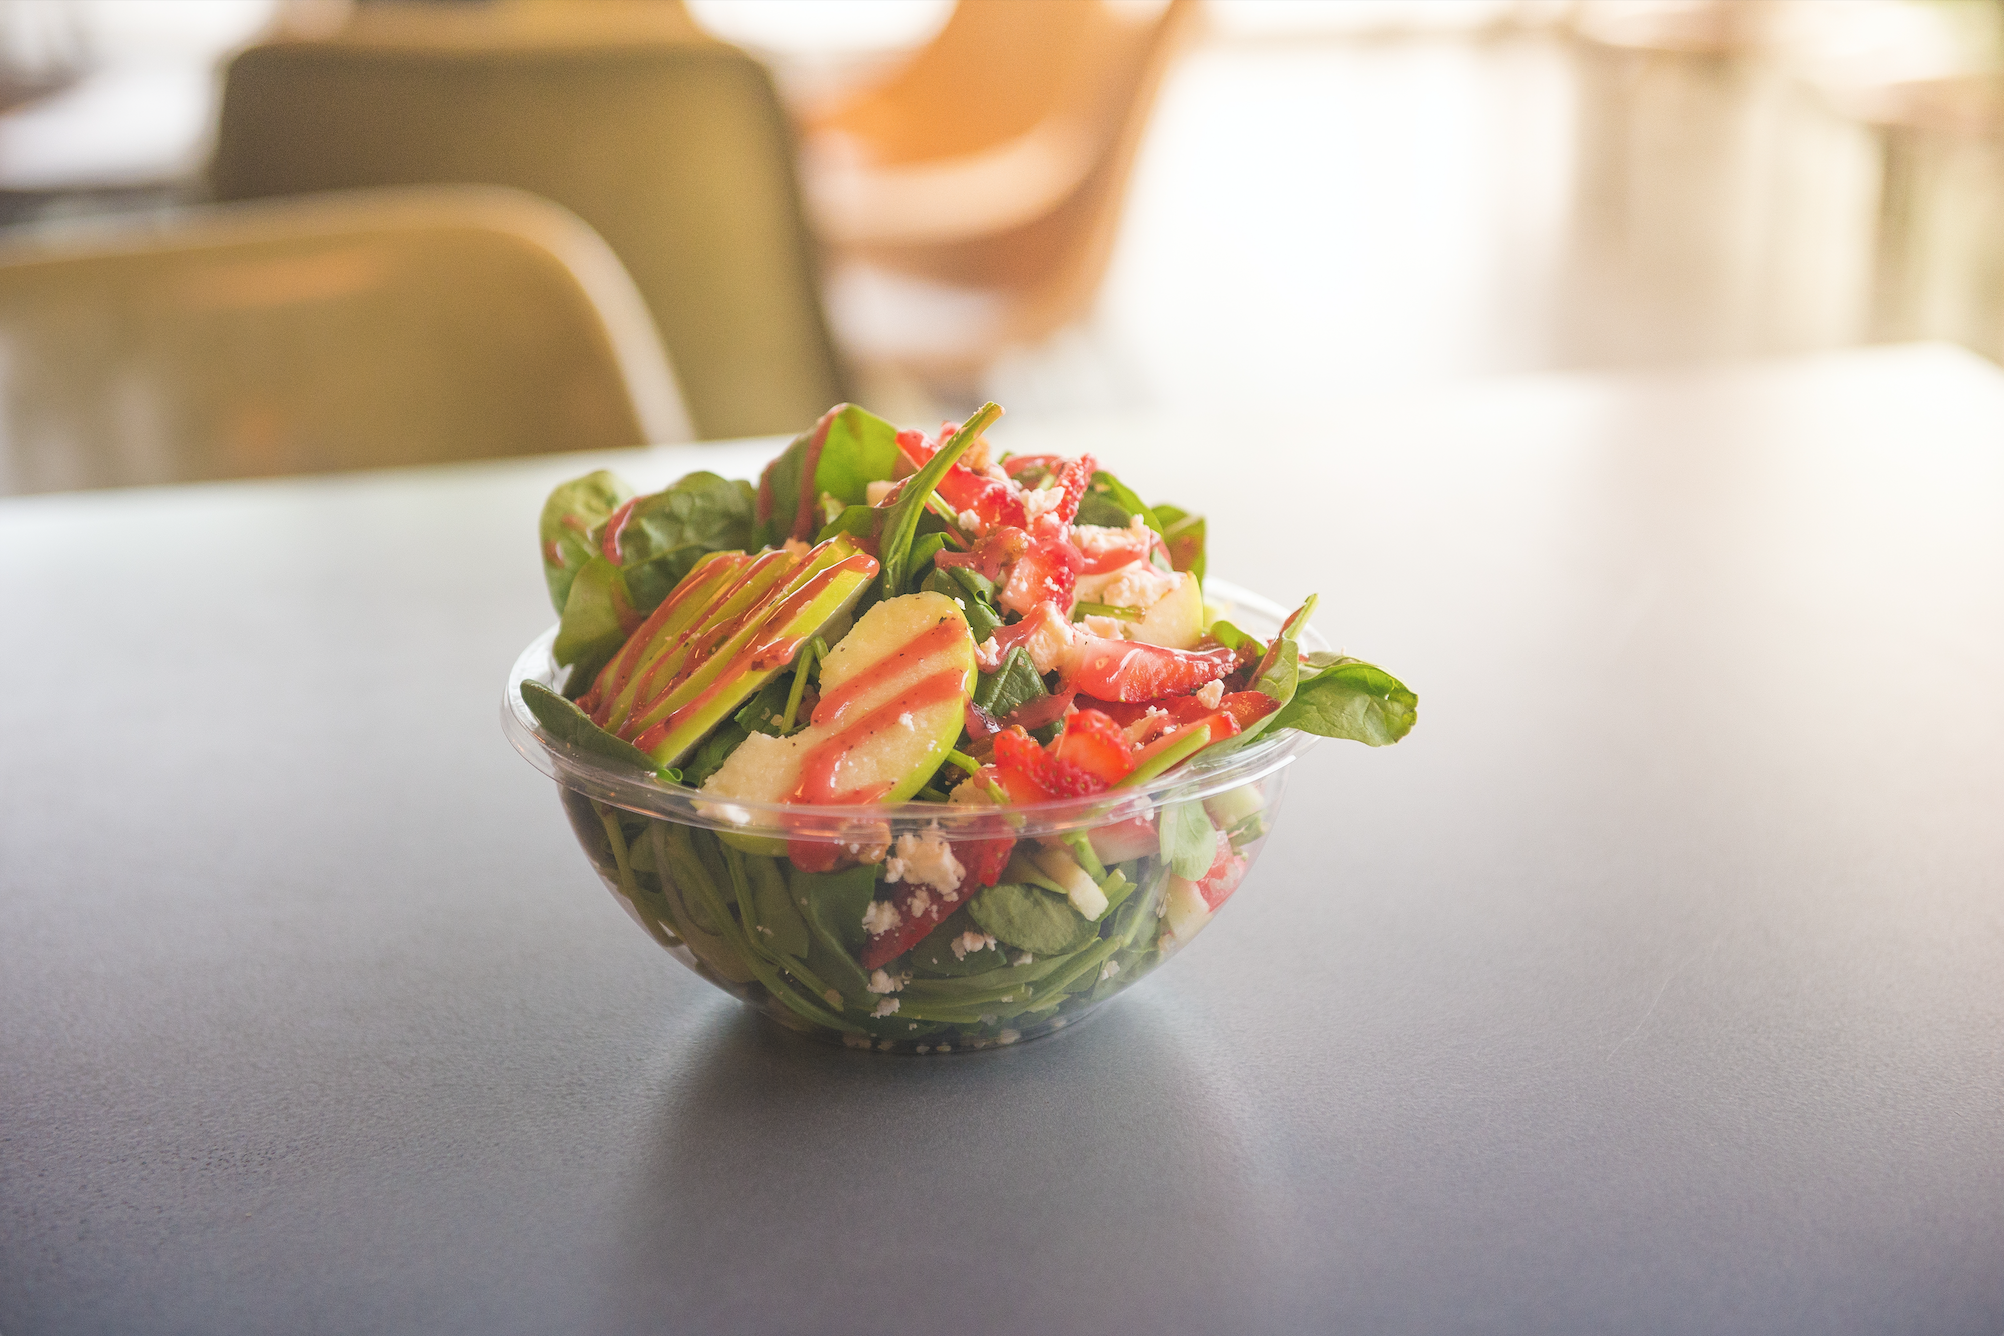 Try our Spring Strawberry Salad!